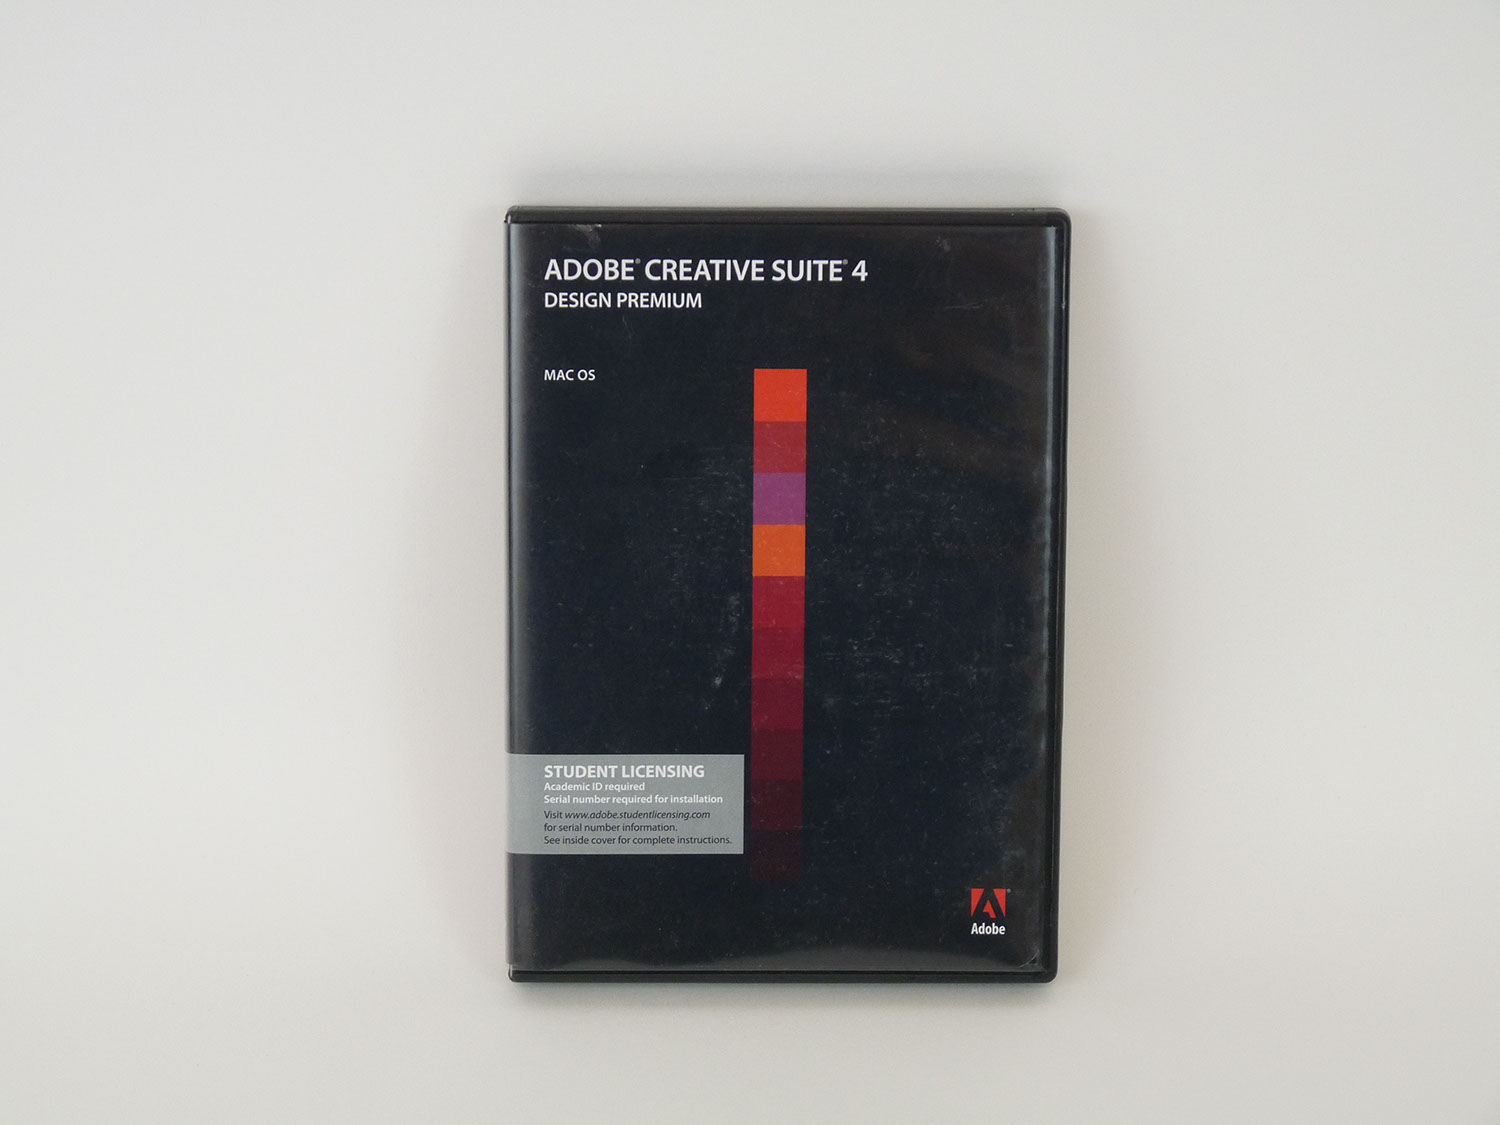 Buy Adobe InDesign CS4 mac os